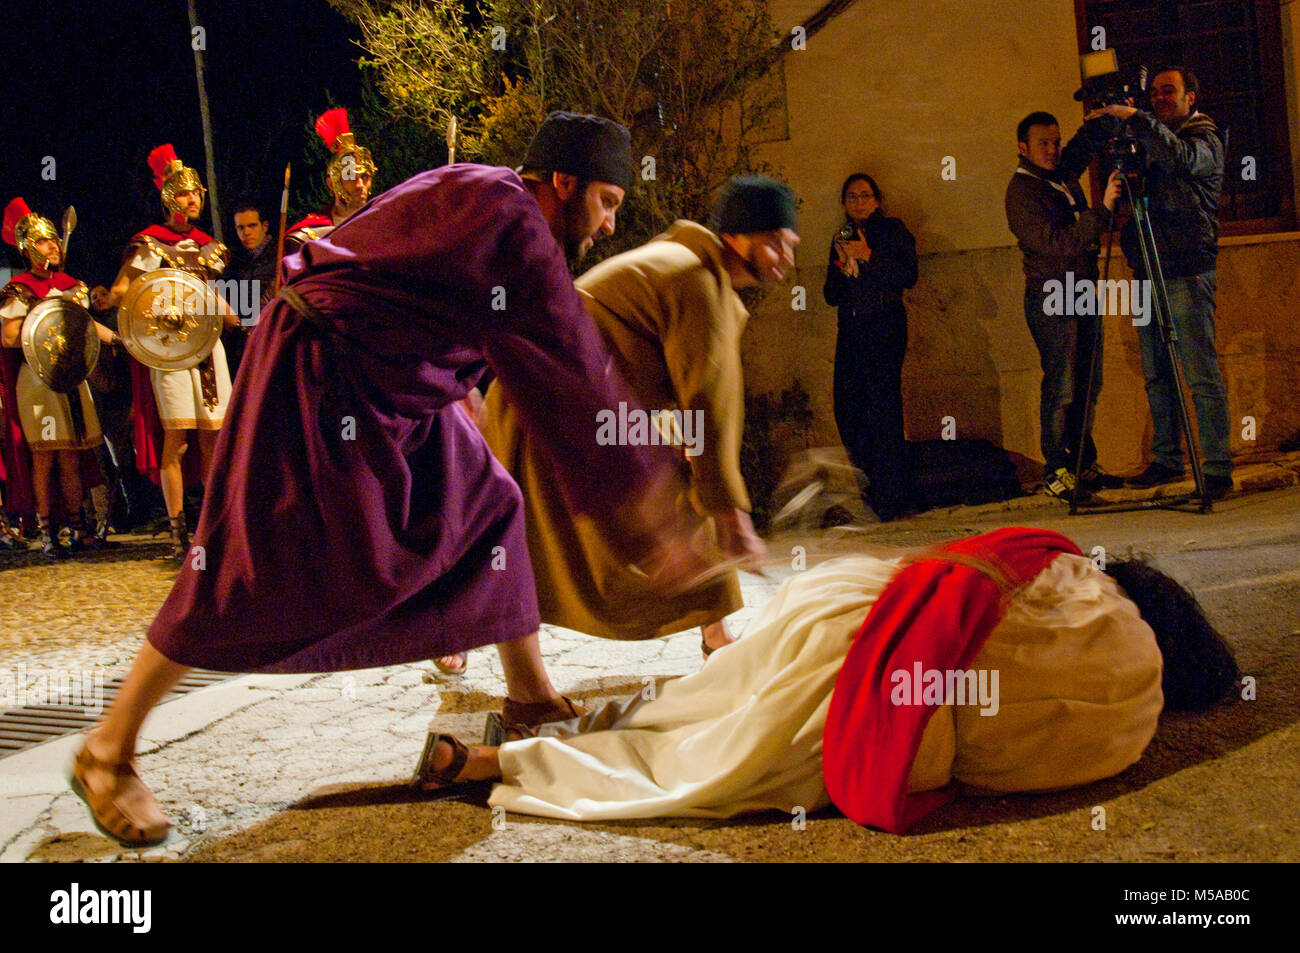 Passion of Chinchon, traditional Holy Week performance. Chinchon, Madrid province, Spain. Stock Photo